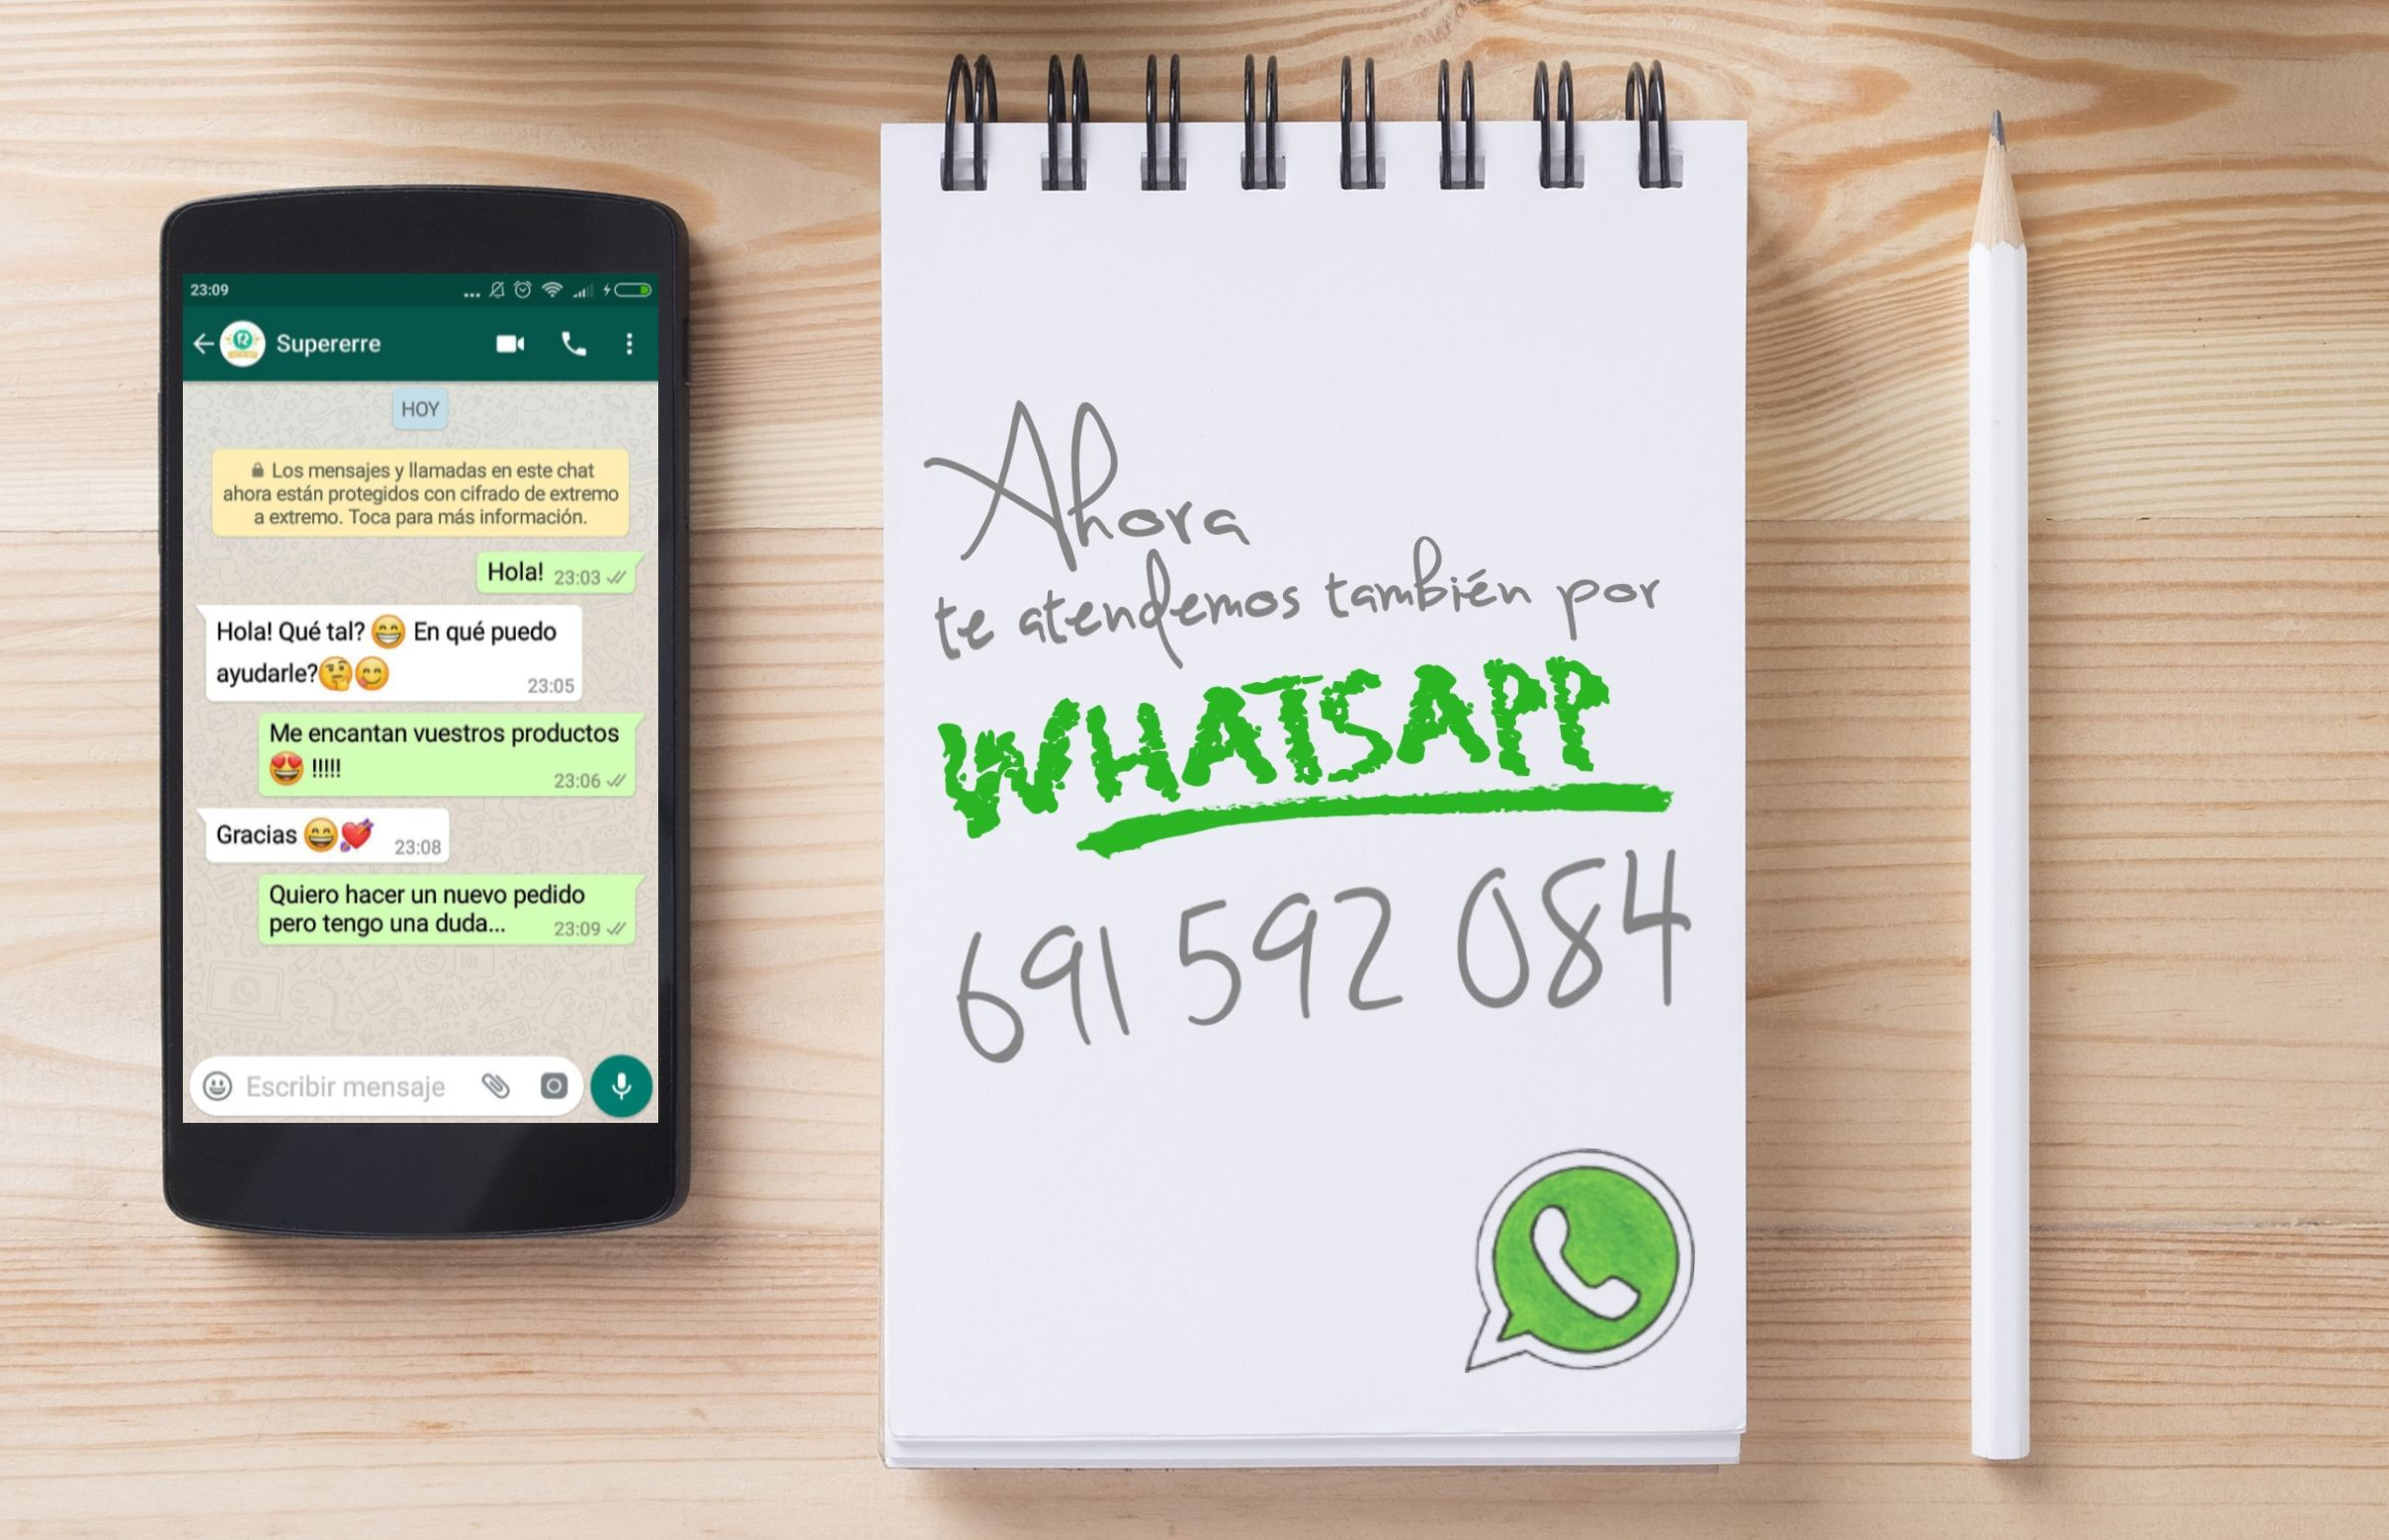 Supererre Atencion al Cliente via Whatsapp